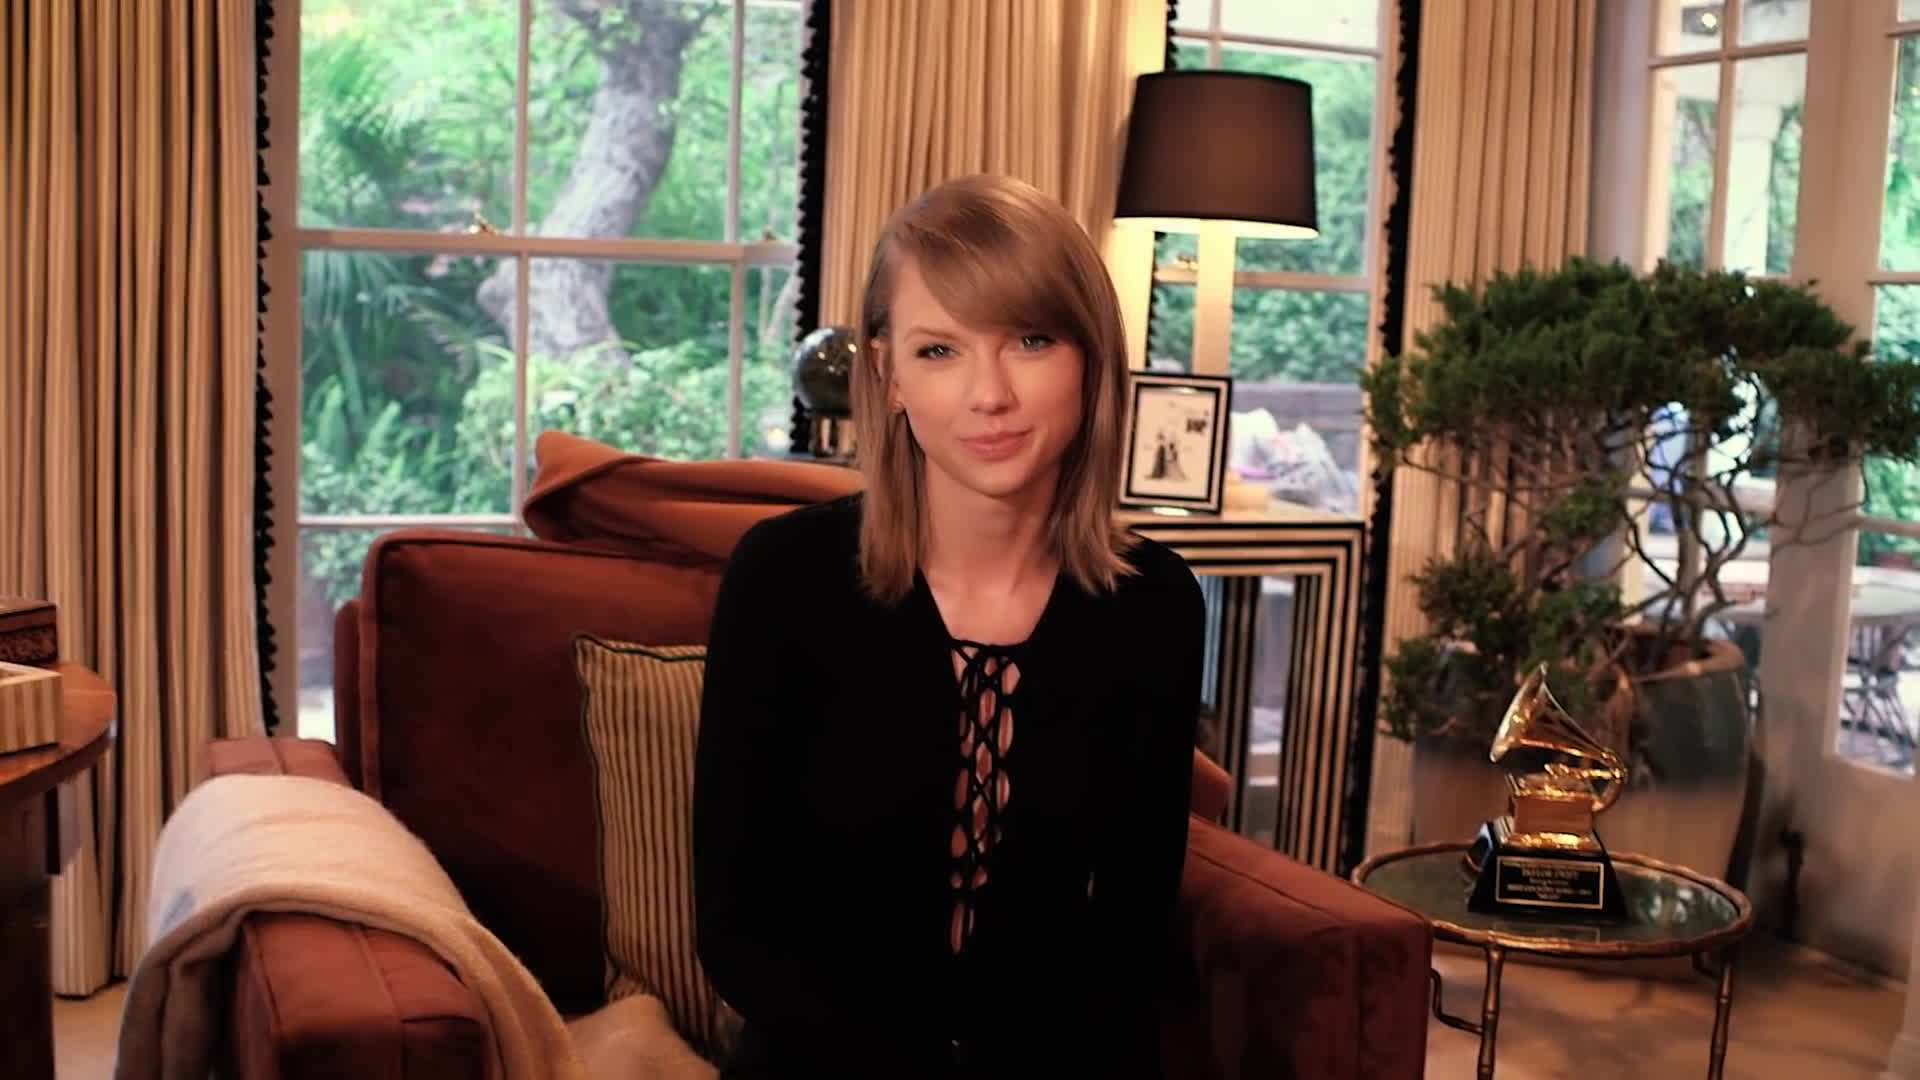 73 questions, TaylorSwiftPictures, fashion, 73 Questions With Taylor Swift GIFs